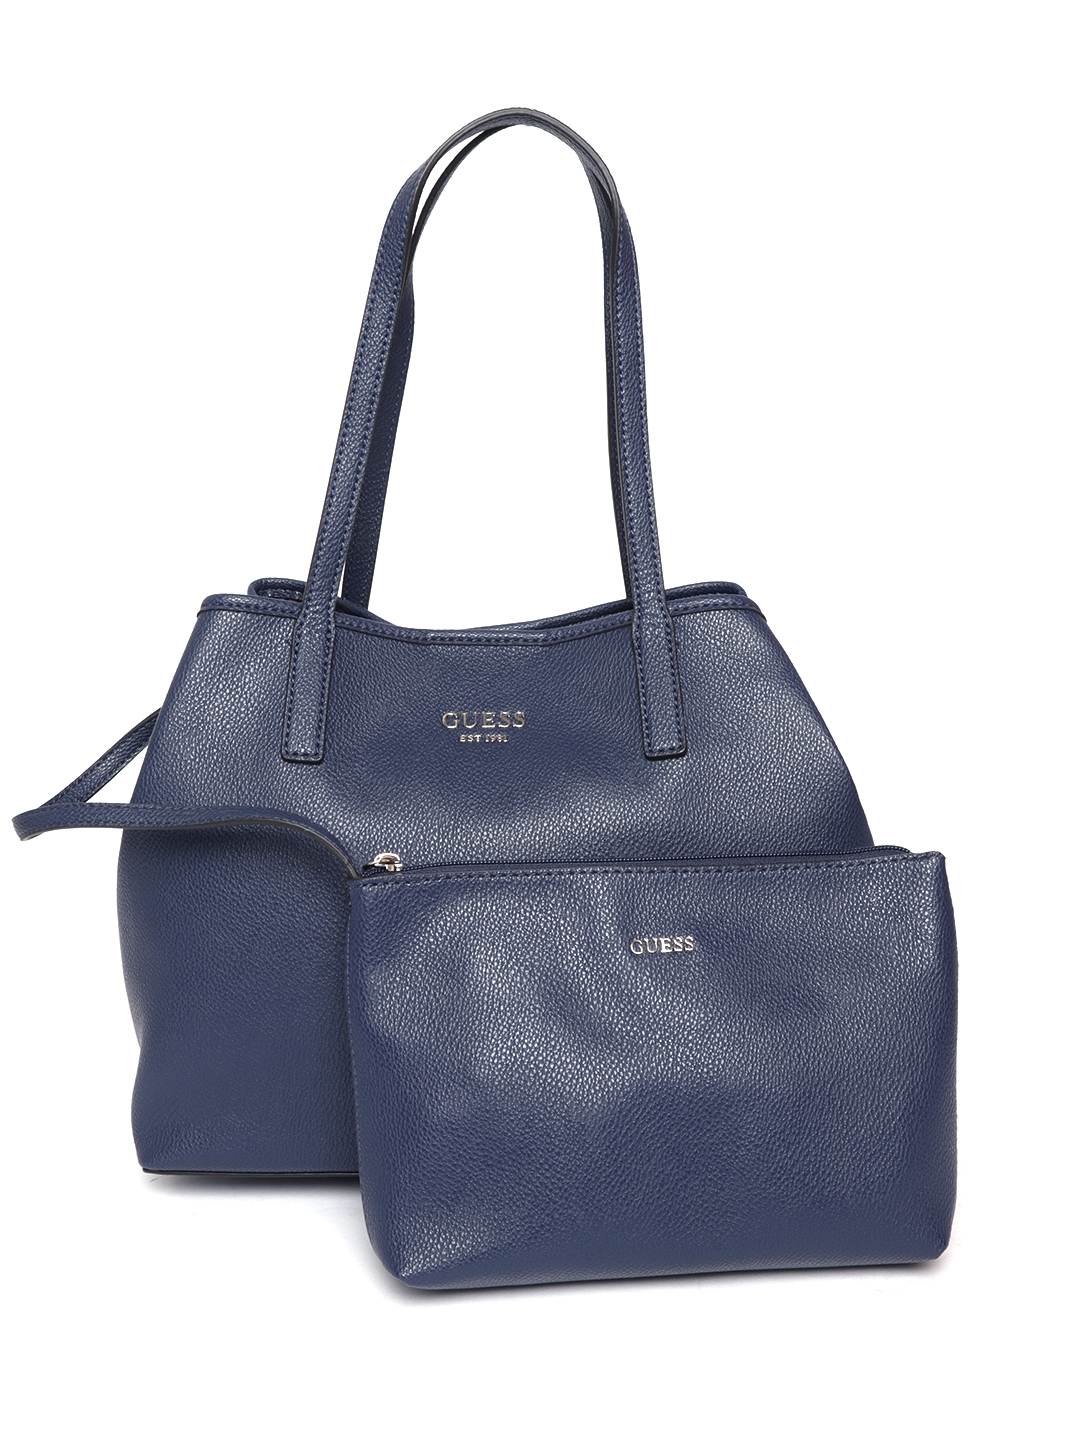 Buy GUESS Navy Blue Solid Shoulder Bag -